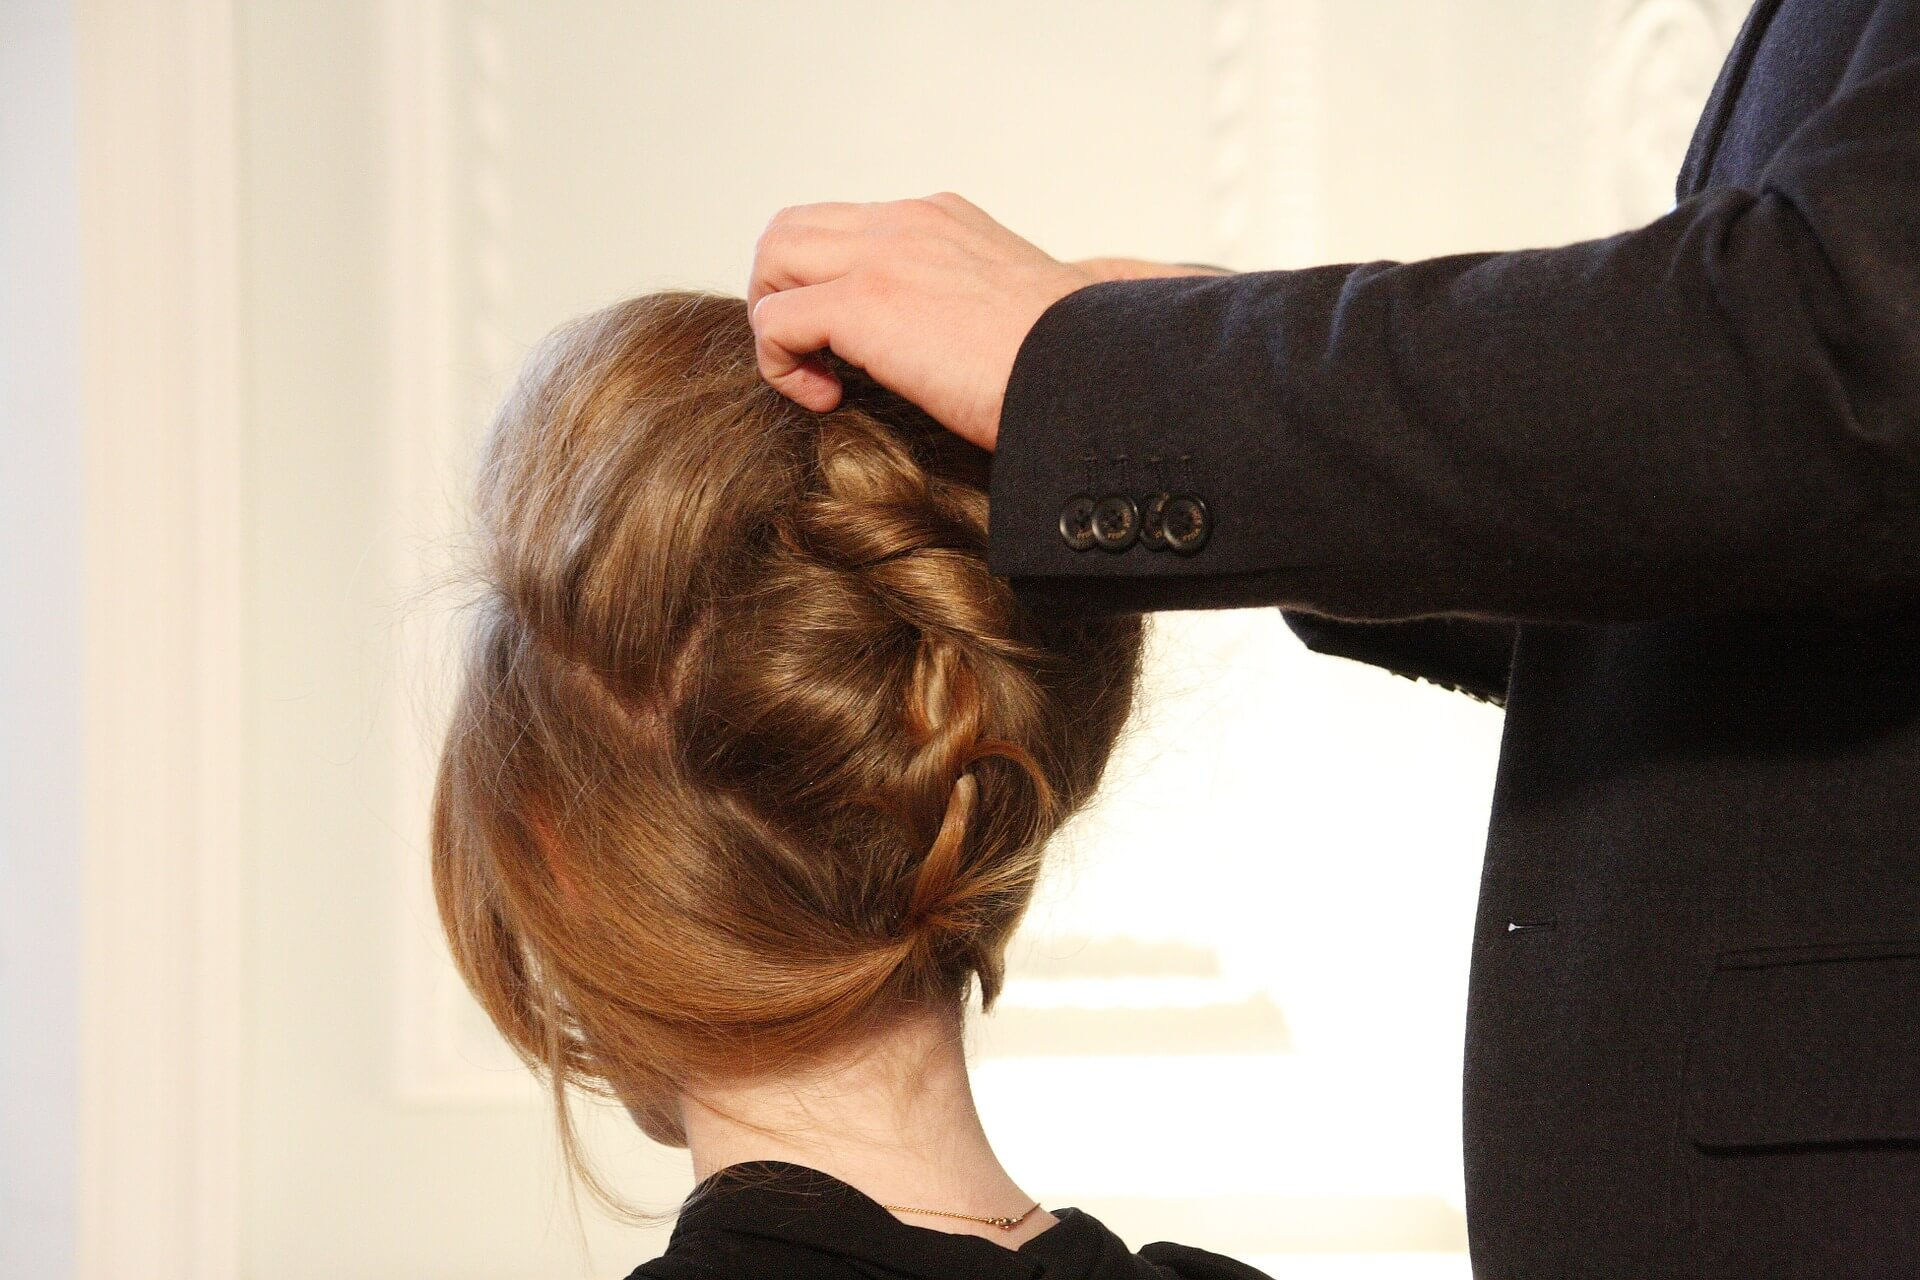 Mobile hairdresser can offer additional services for special events